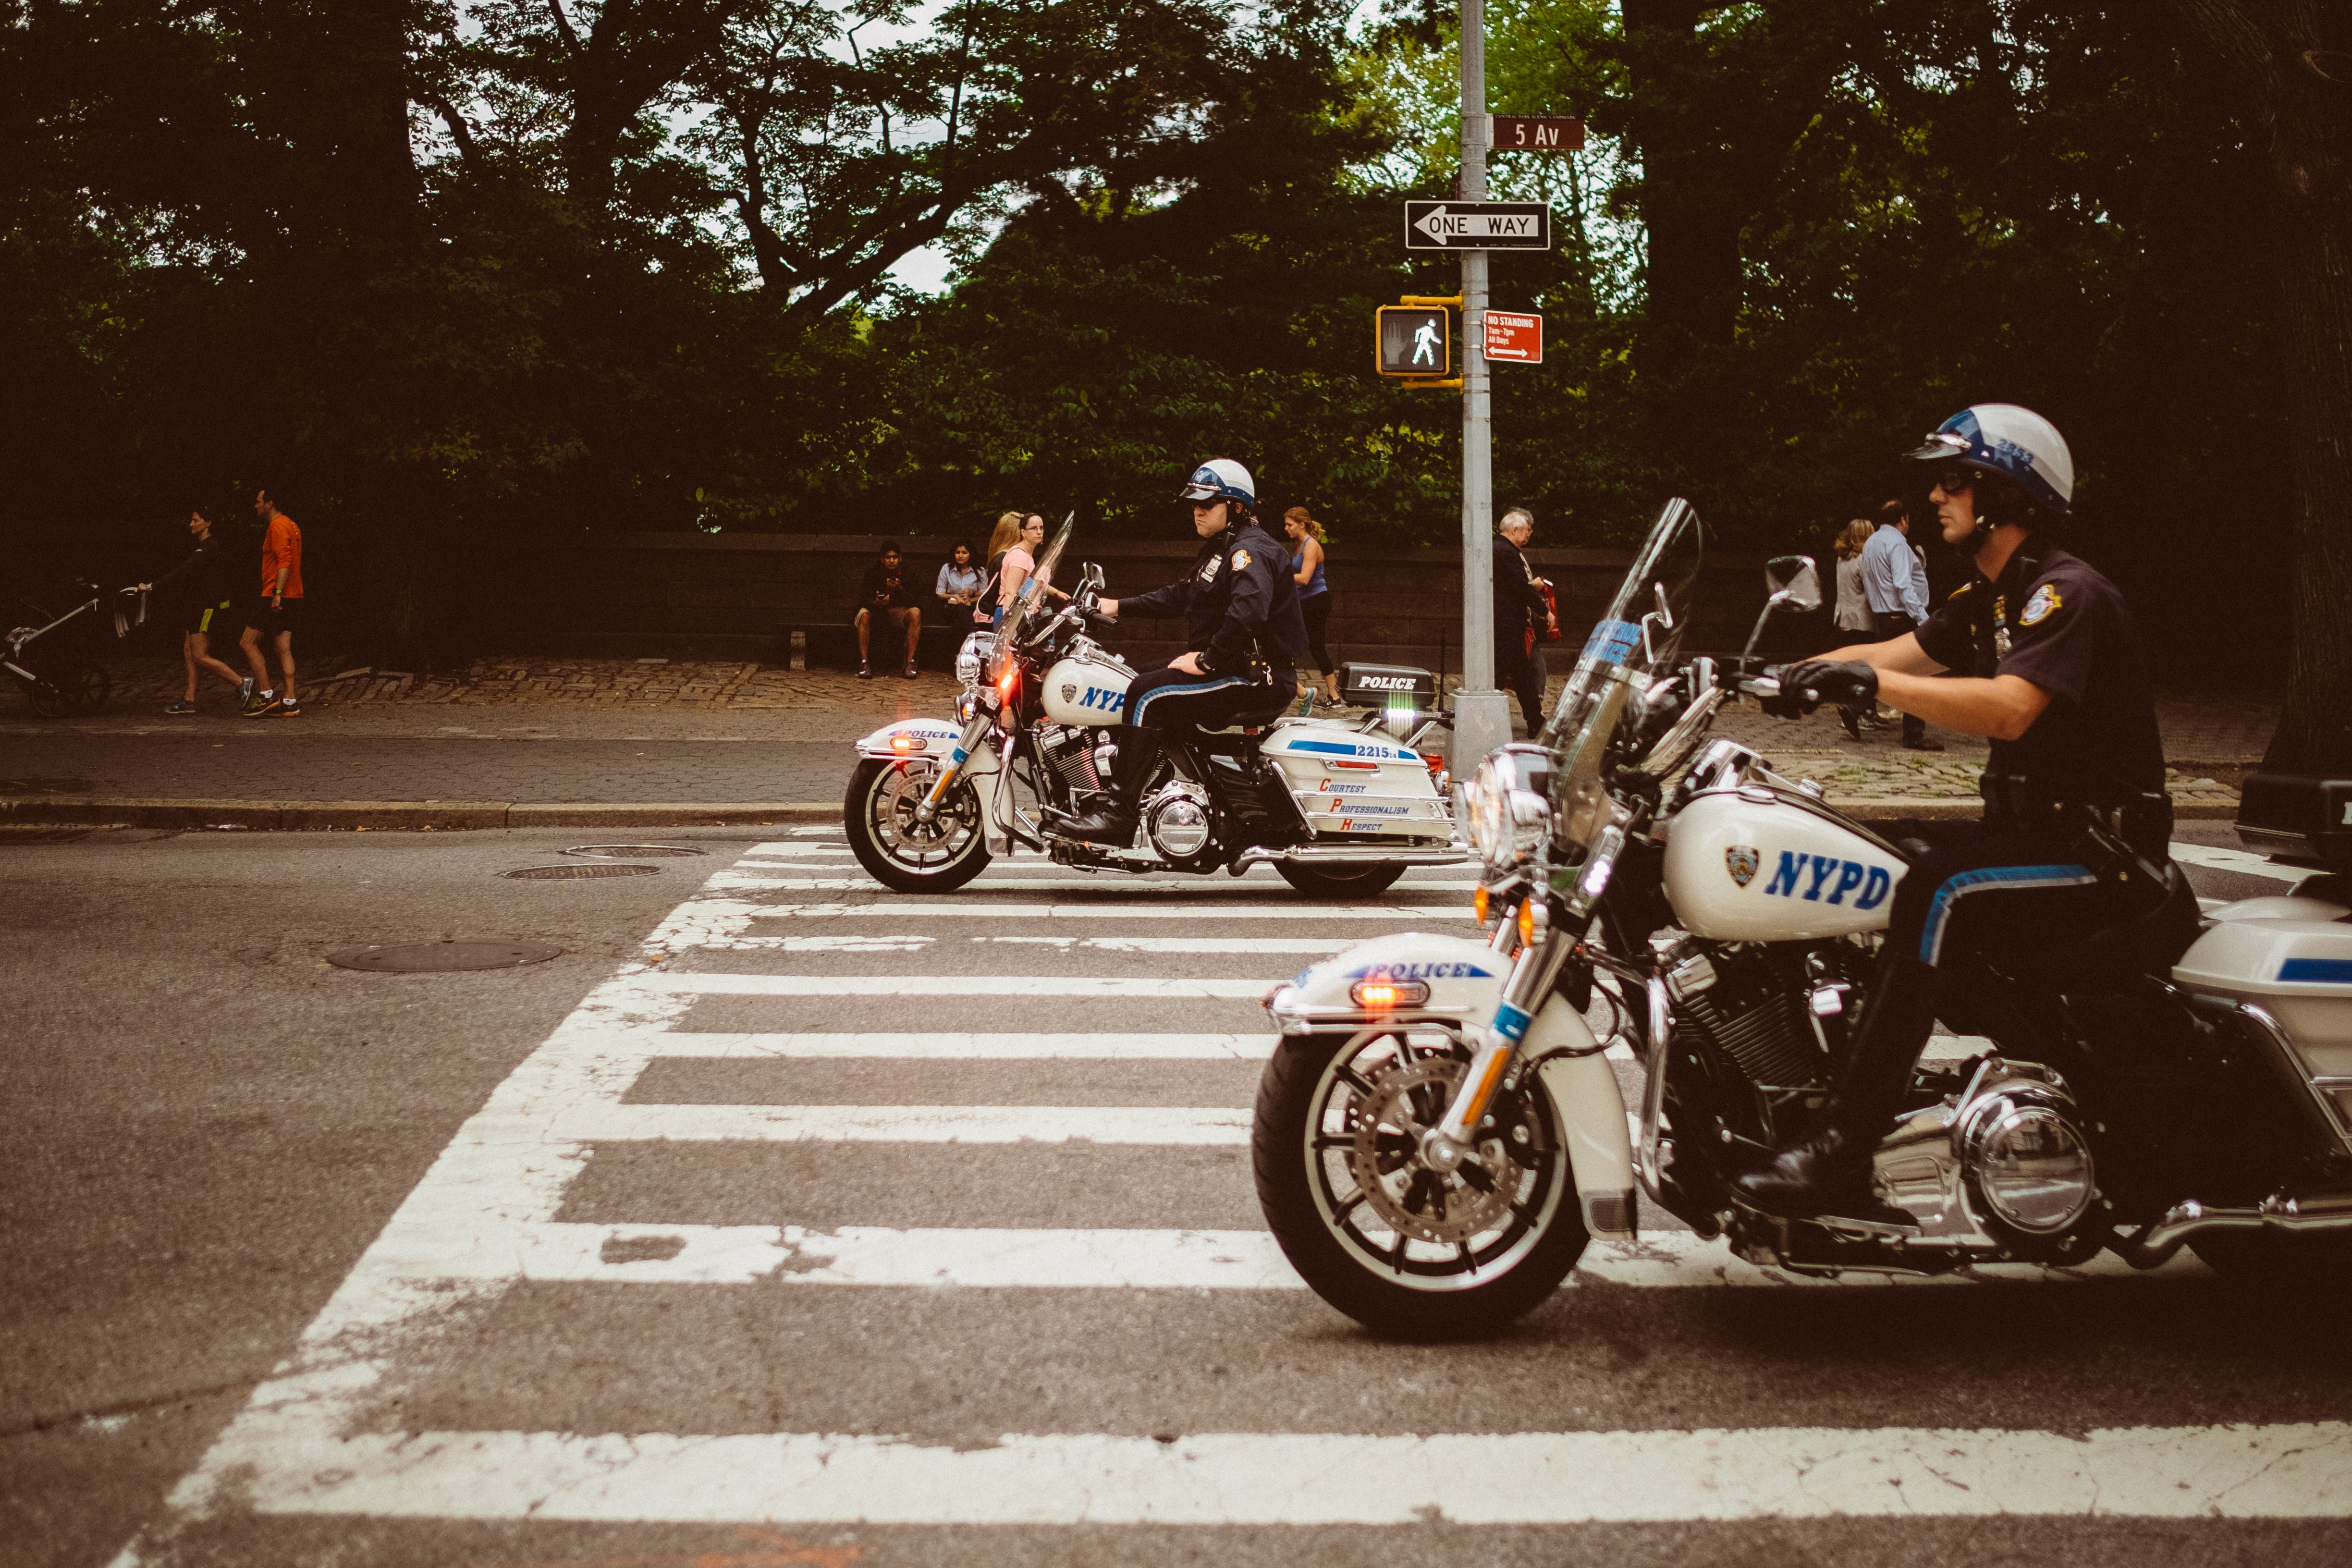 Two police officers riding motorcycles in New York City next to Central Park